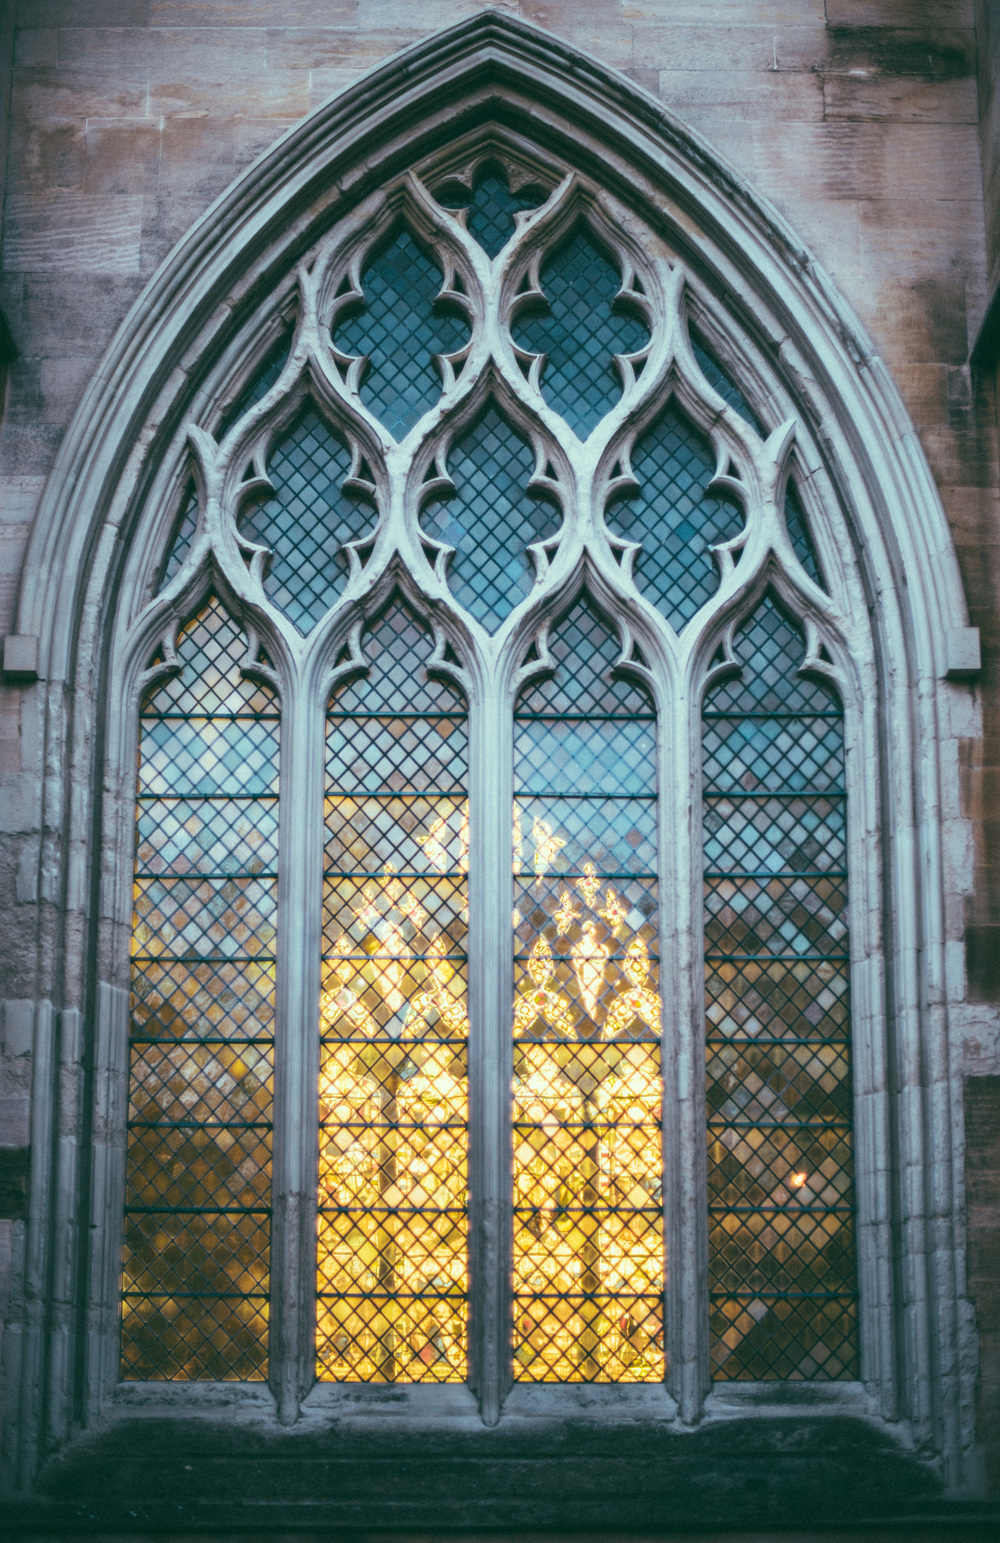 Stained Glass | A7R & Canon nFD 50/1.4 | 1/800s ISO100 50mm F1.4